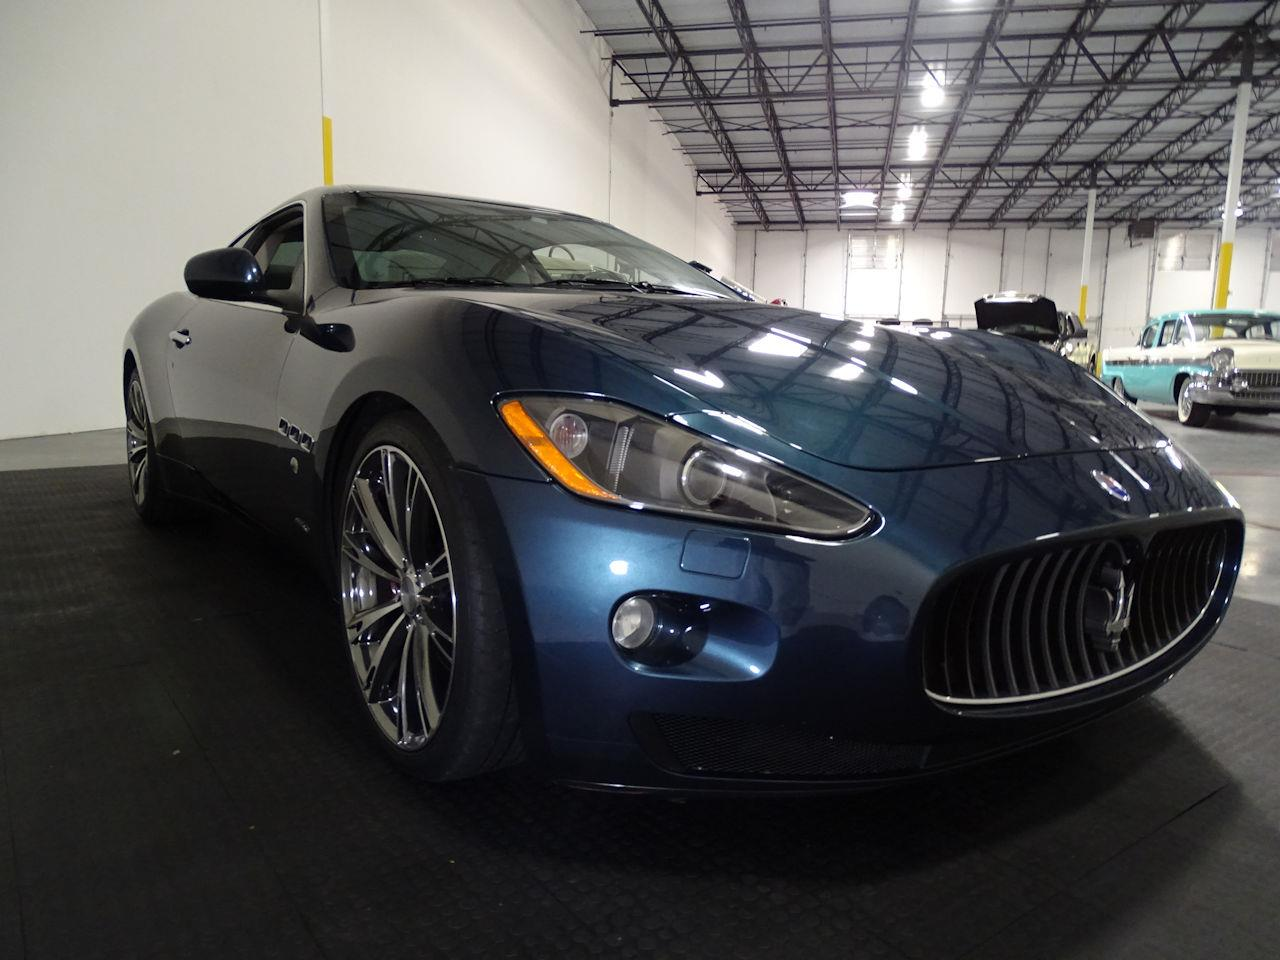 Large Picture of '08 GranTurismo located in Houston Texas - $42,995.00 Offered by Gateway Classic Cars - Houston - MO4H